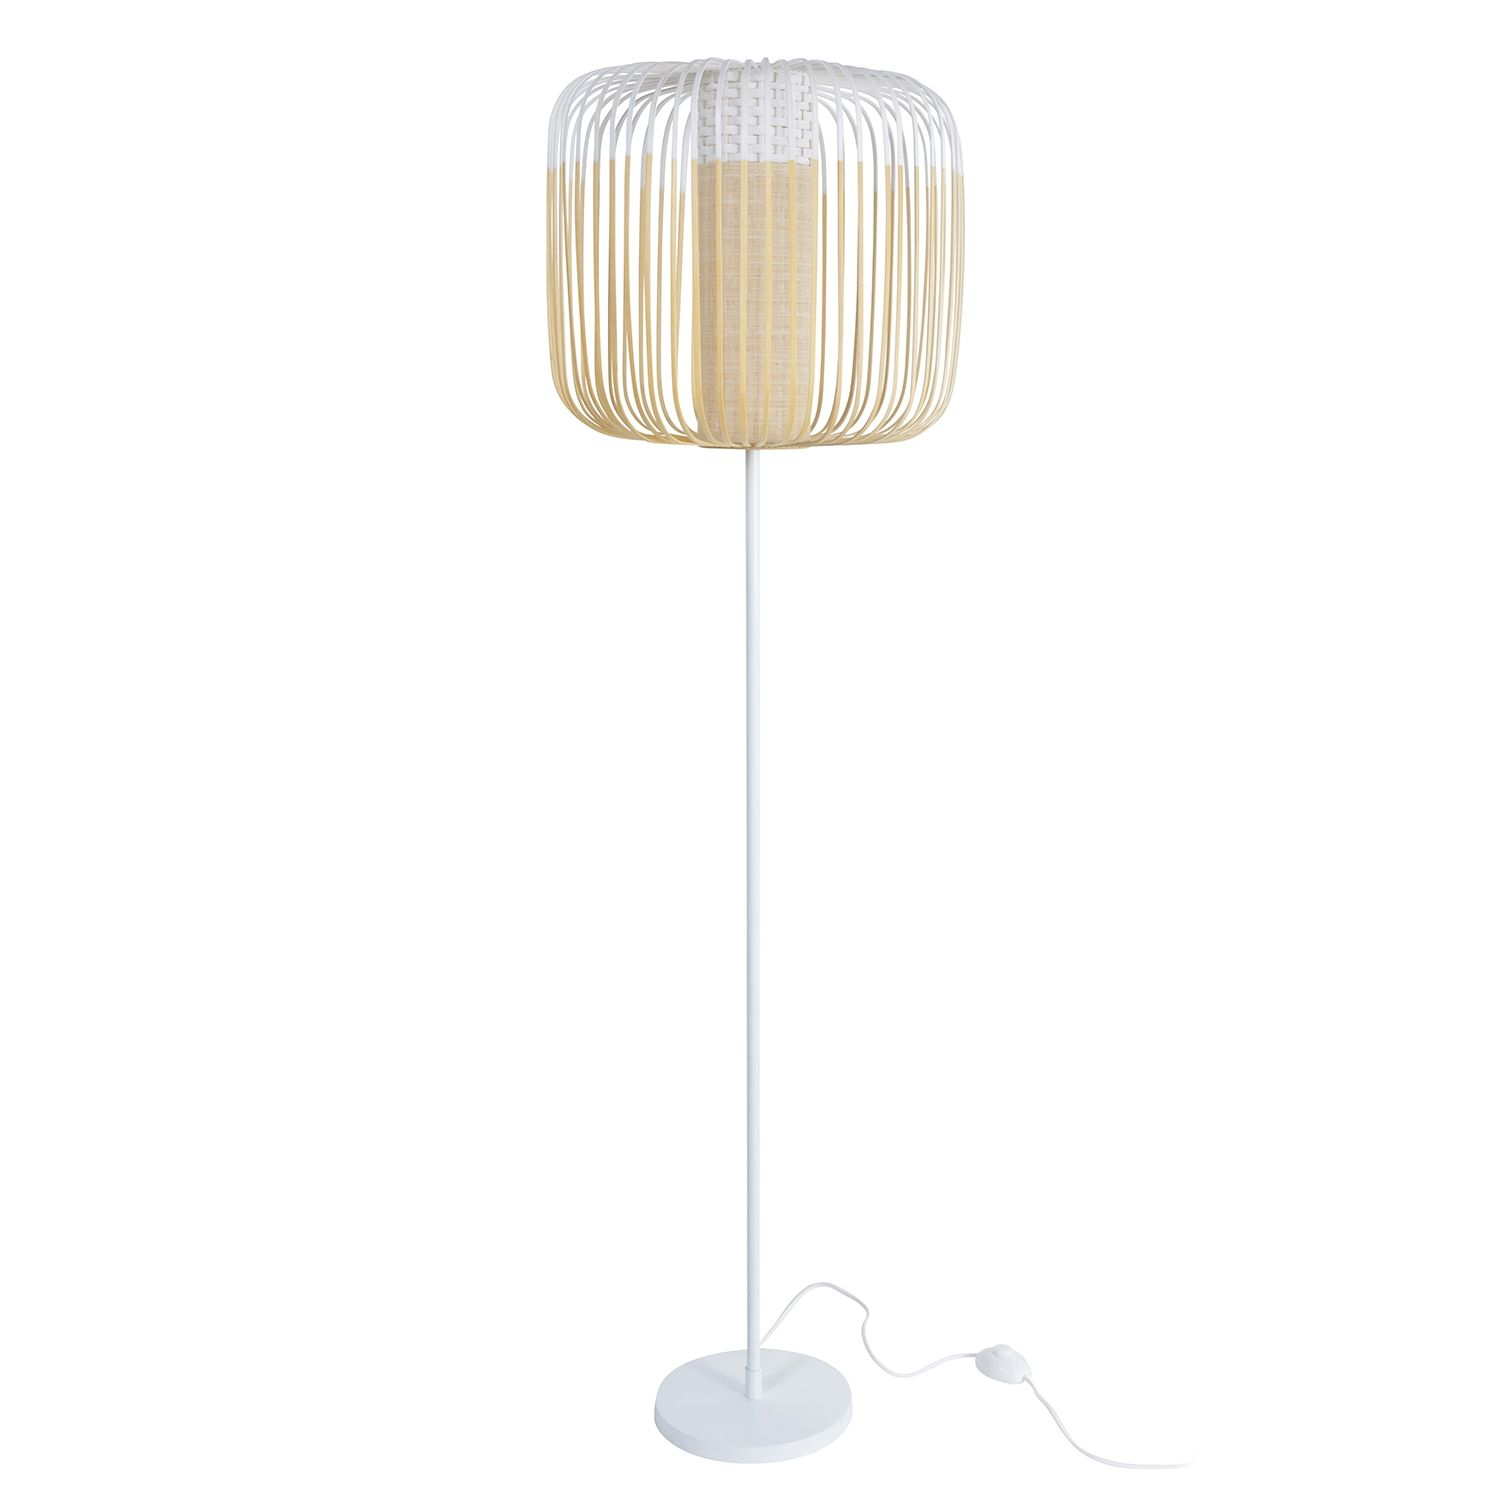 Bamboo vloerlamp Forestier wit